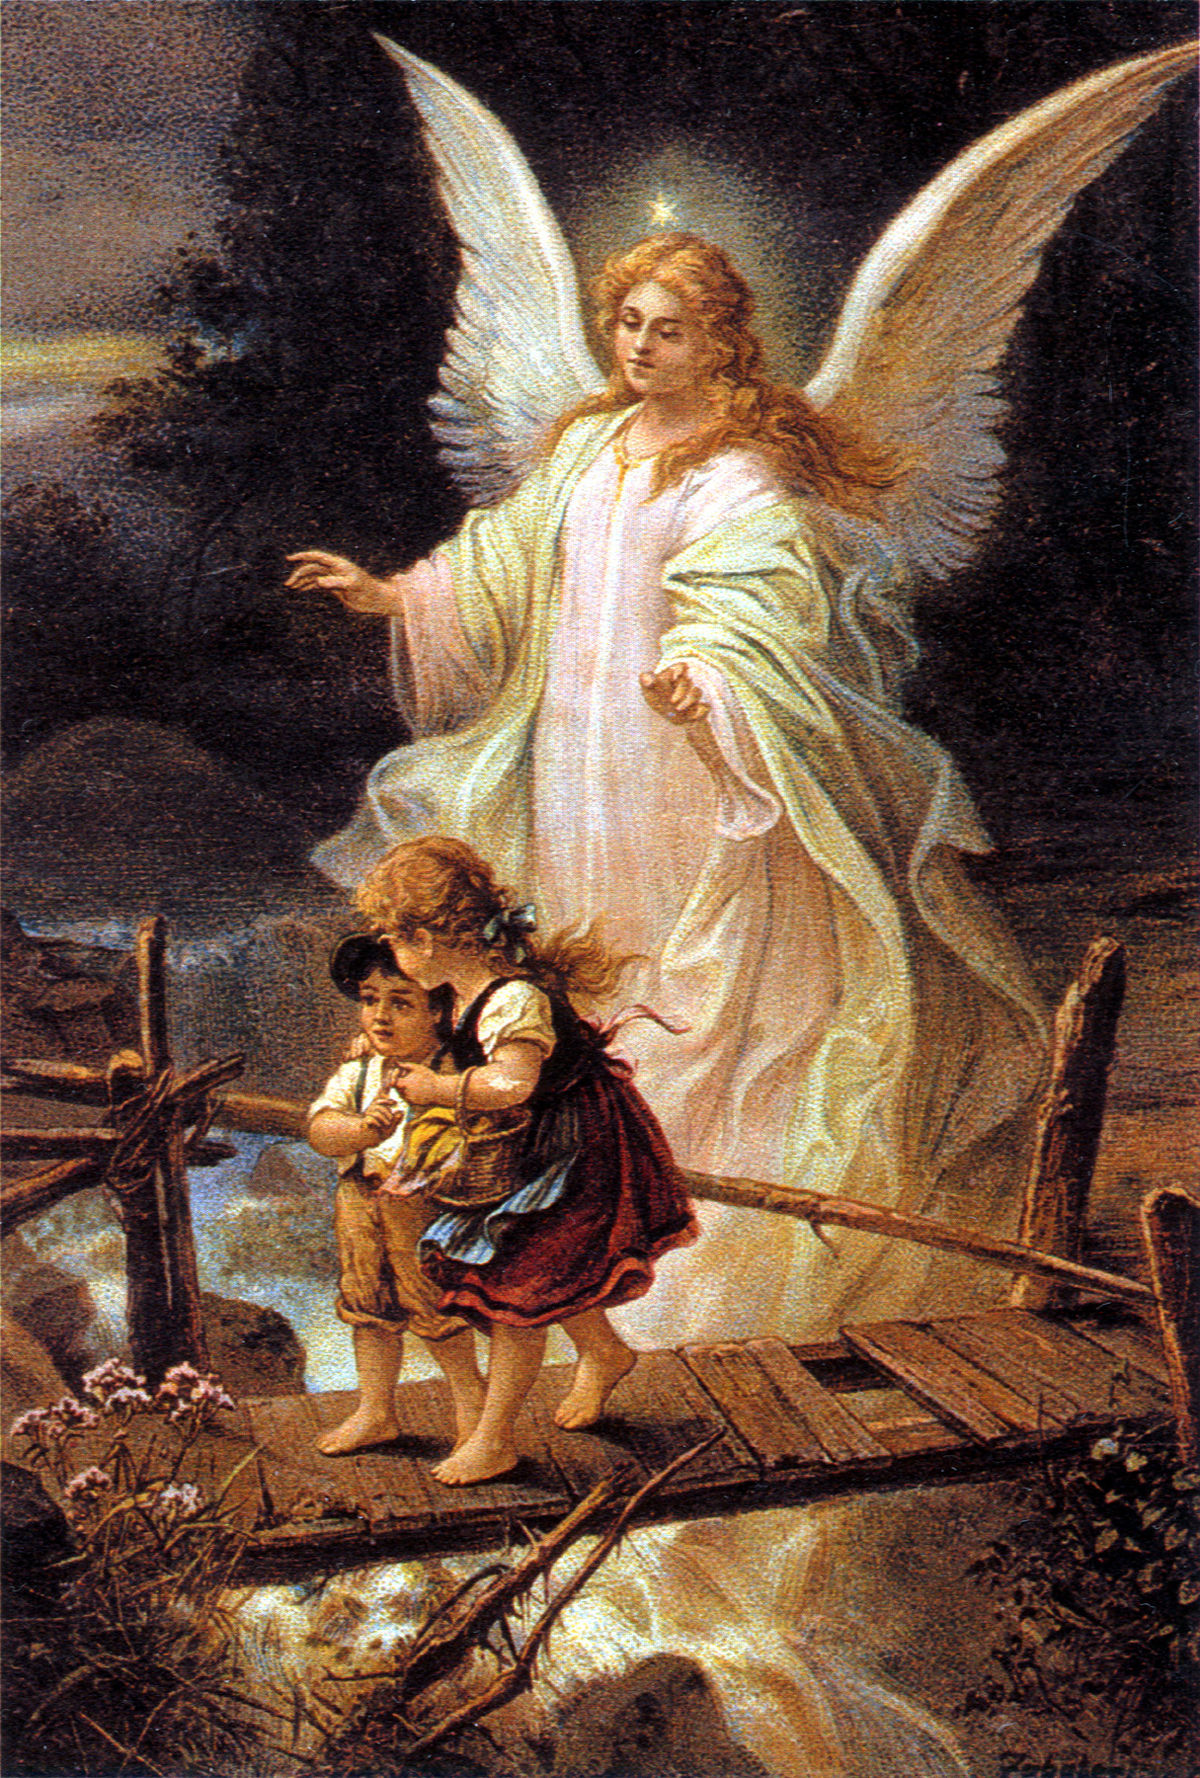 guardian angel - Wiktionary